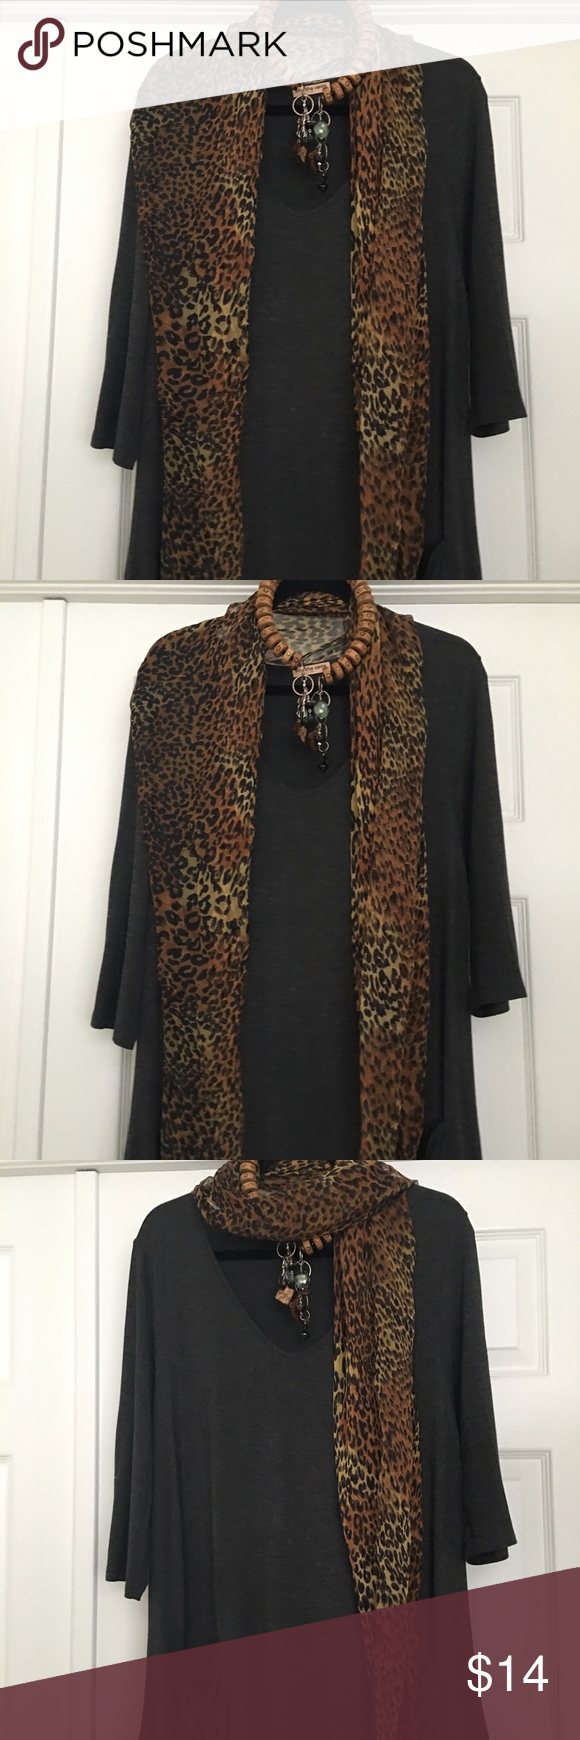 Neck scarf Sheer leopard print scarf.  Shown here with African inspired necklace also in my closet. NWOT Accessories Scarves & Wraps